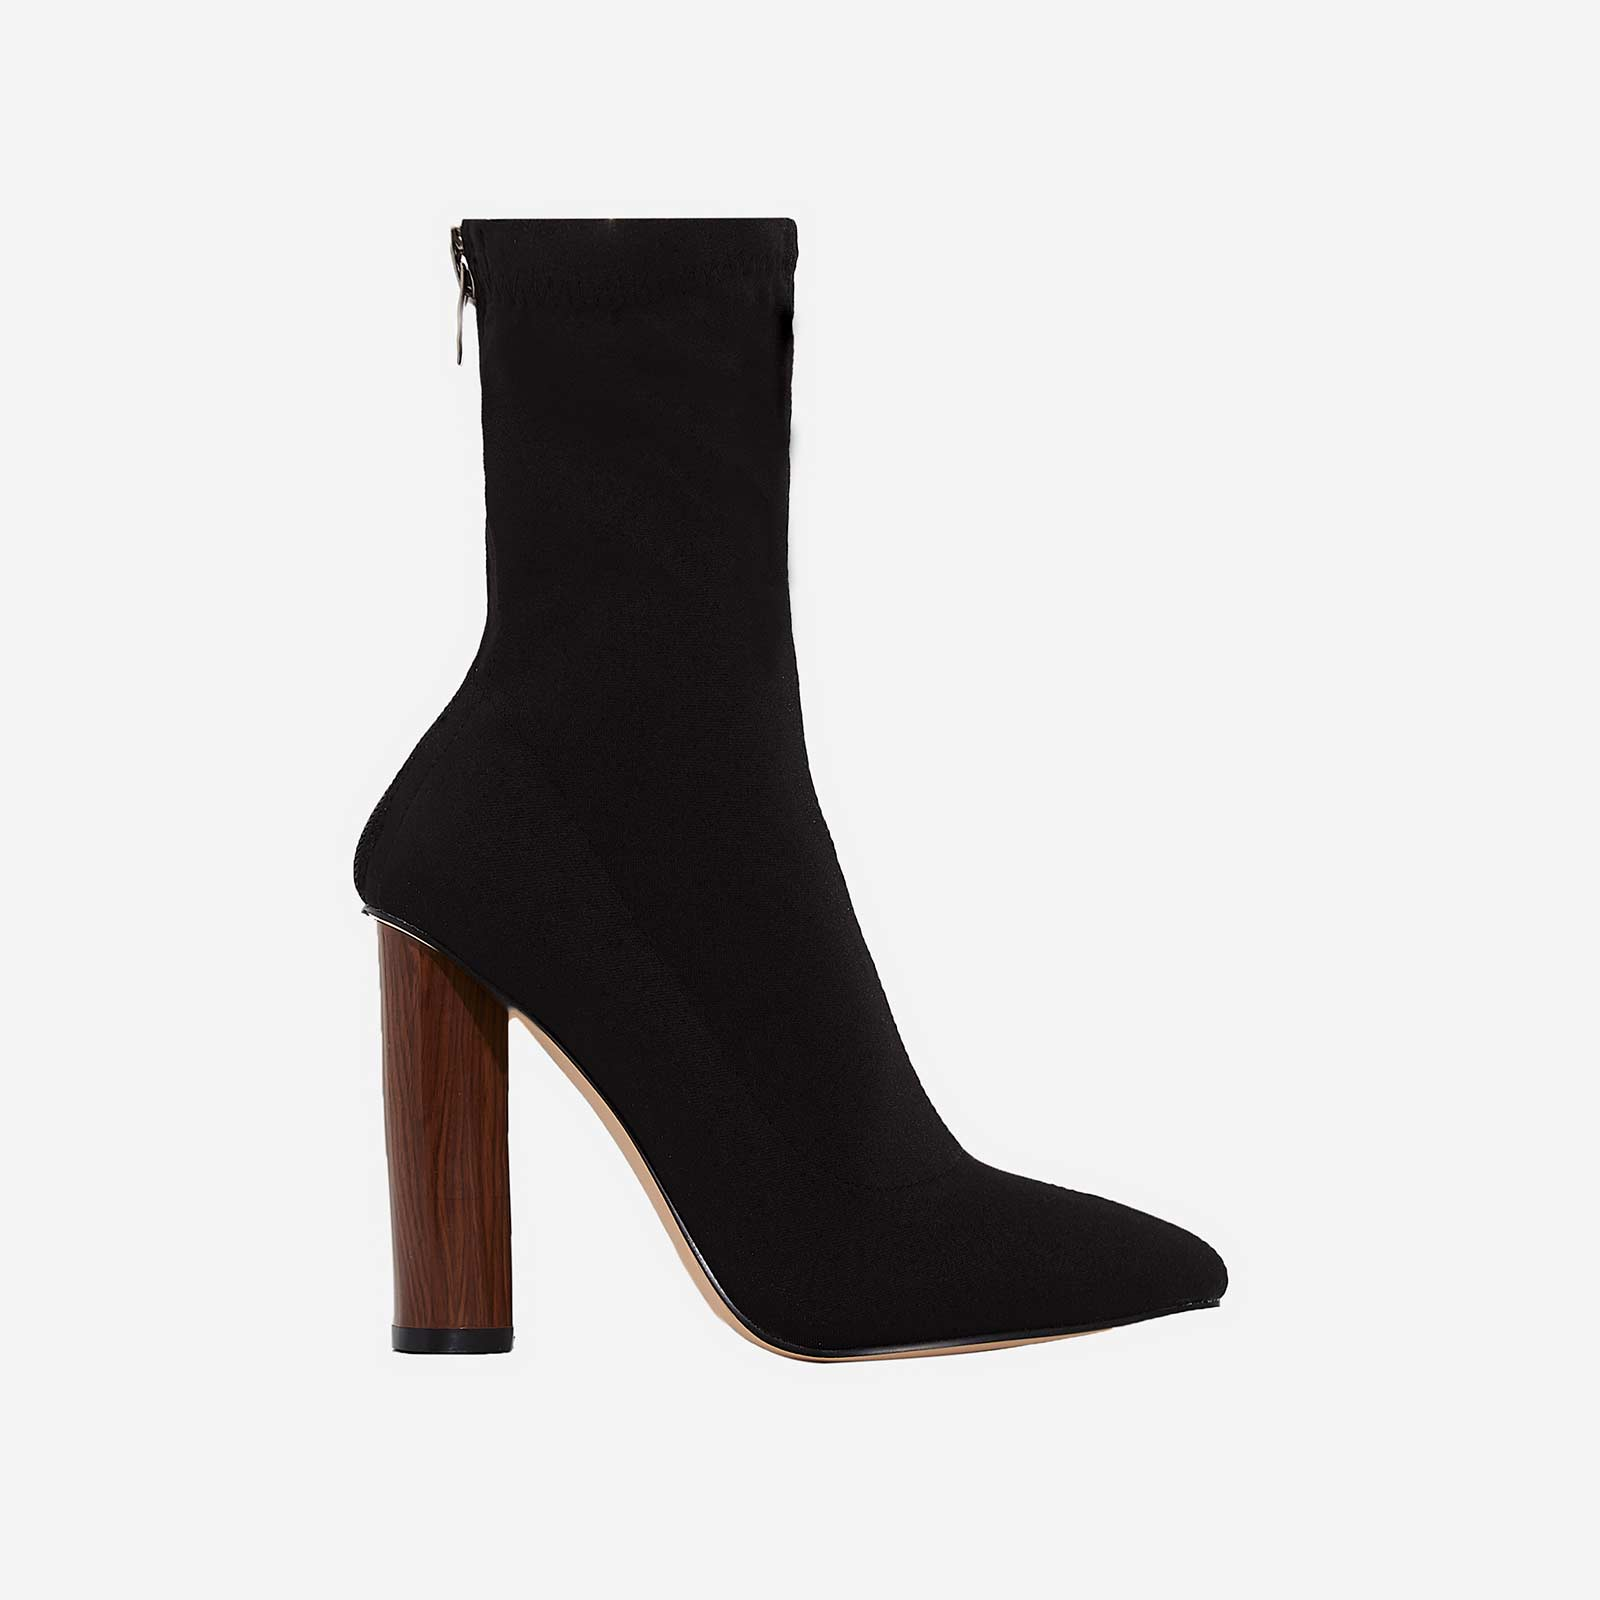 Zina Black High Ankle Boot In Lycra Image 1